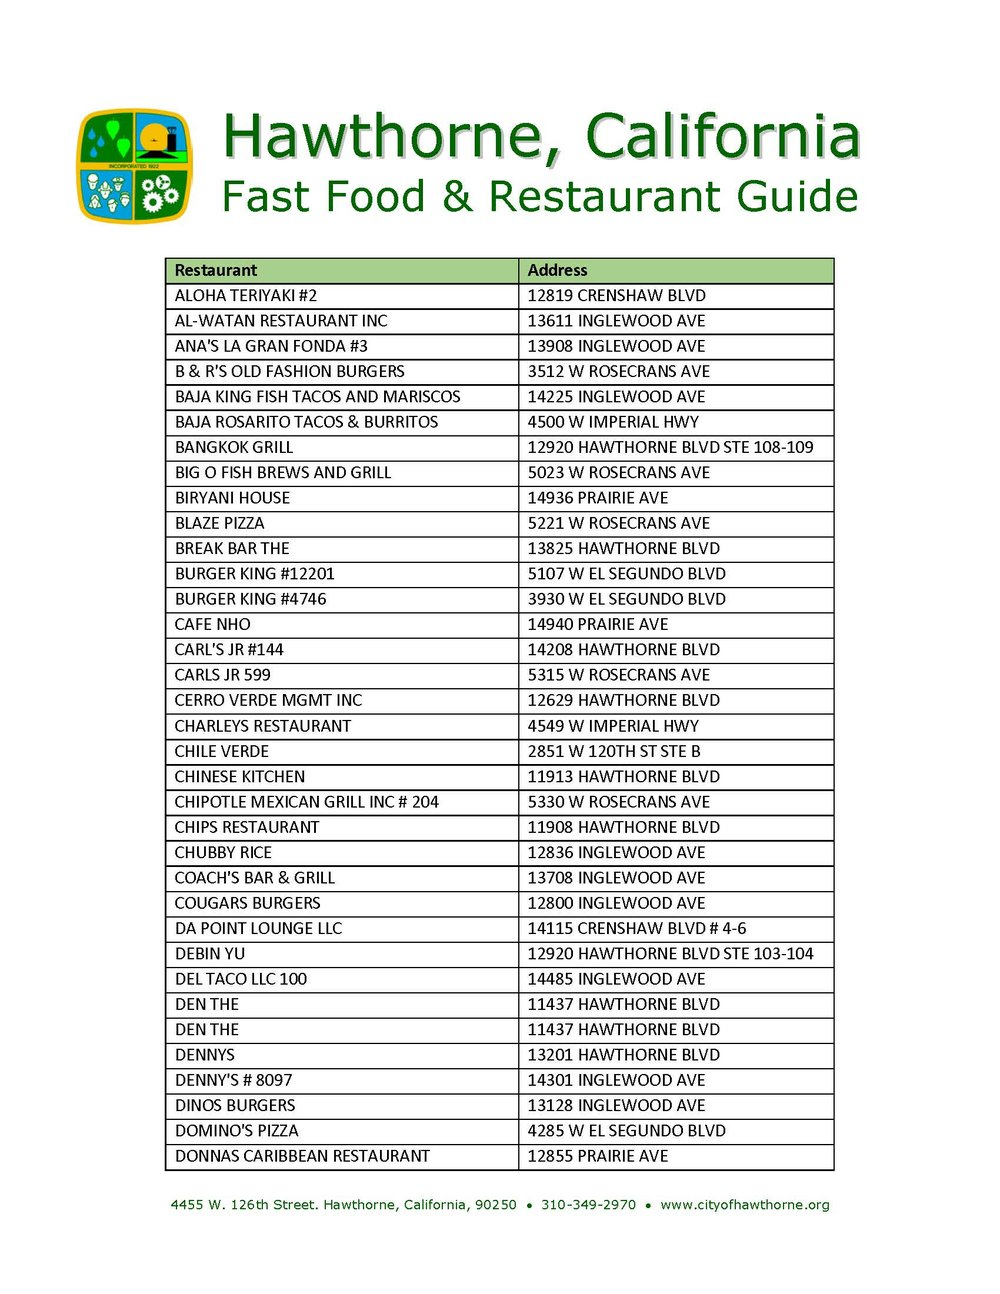 Fast Food & Restaurant Guide - pg 1